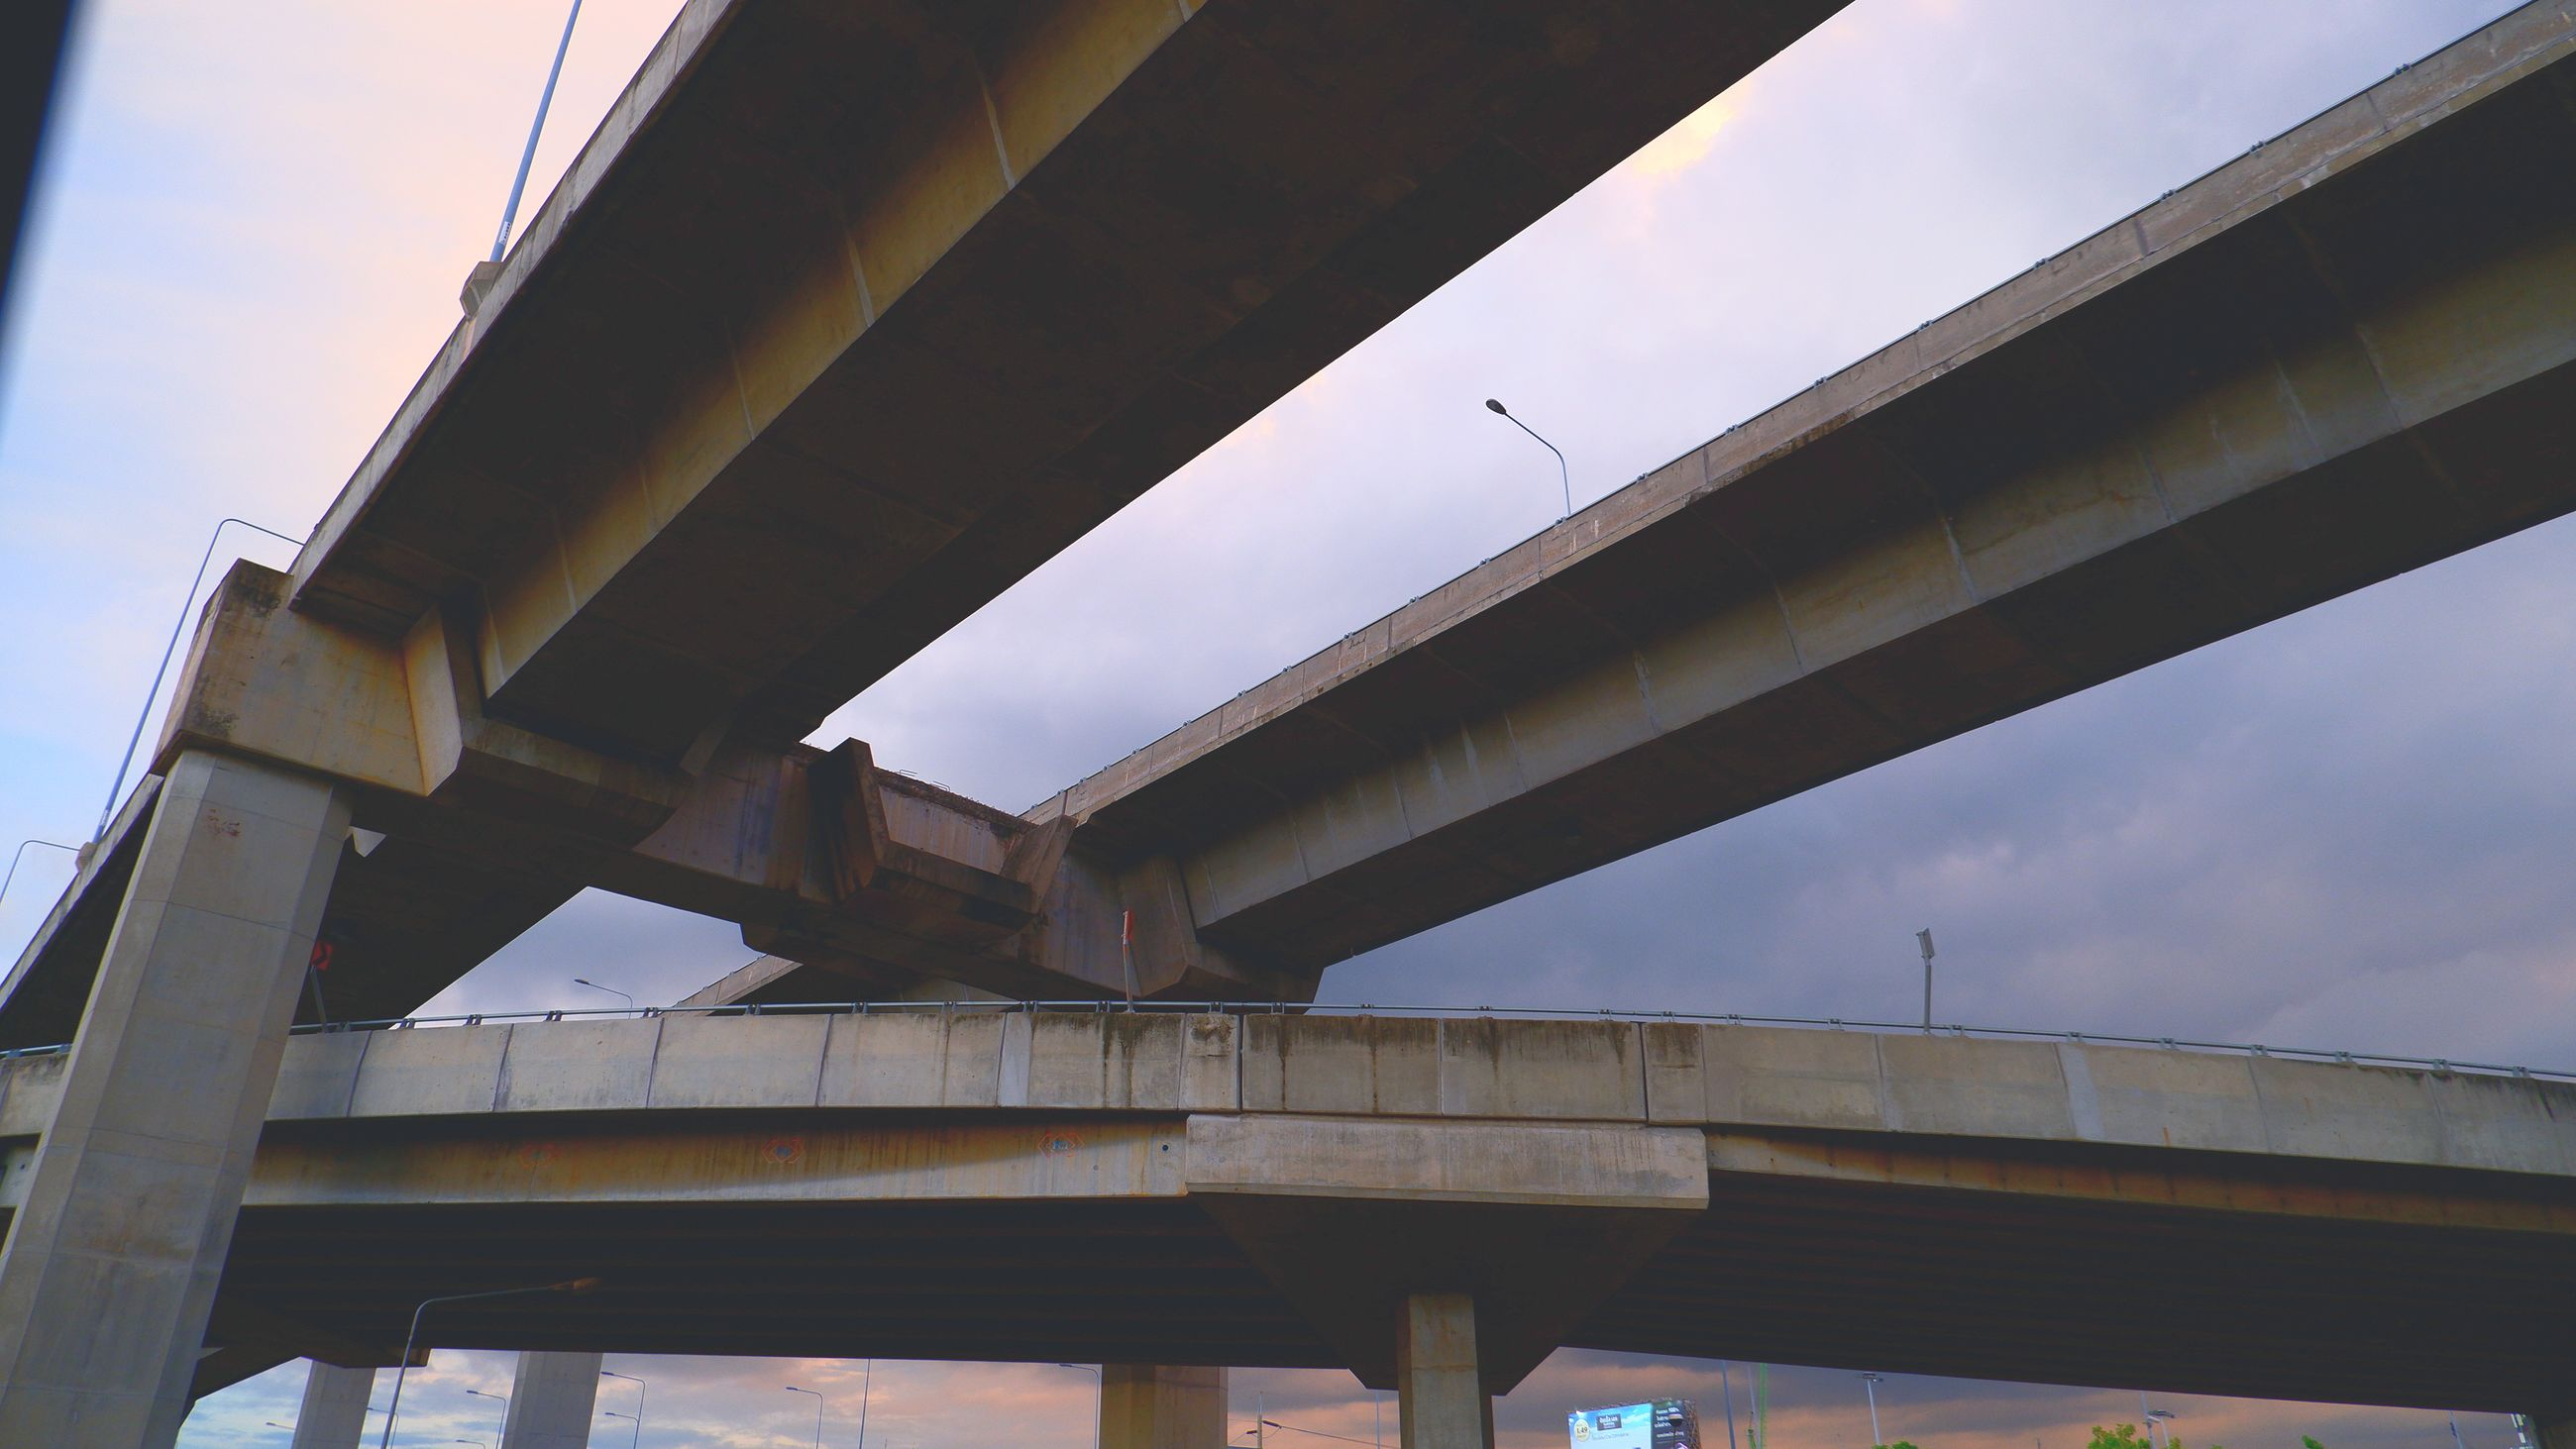 overpass, bridge, architecture, built structure, transport, public transport, transportation, girder bridge, beam bridge, sky, city, low angle view, engineering, nature, road, elevated road, highway, box girder bridge, architectural column, business finance and industry, multiple lane highway, outdoors, viaduct, concrete, travel